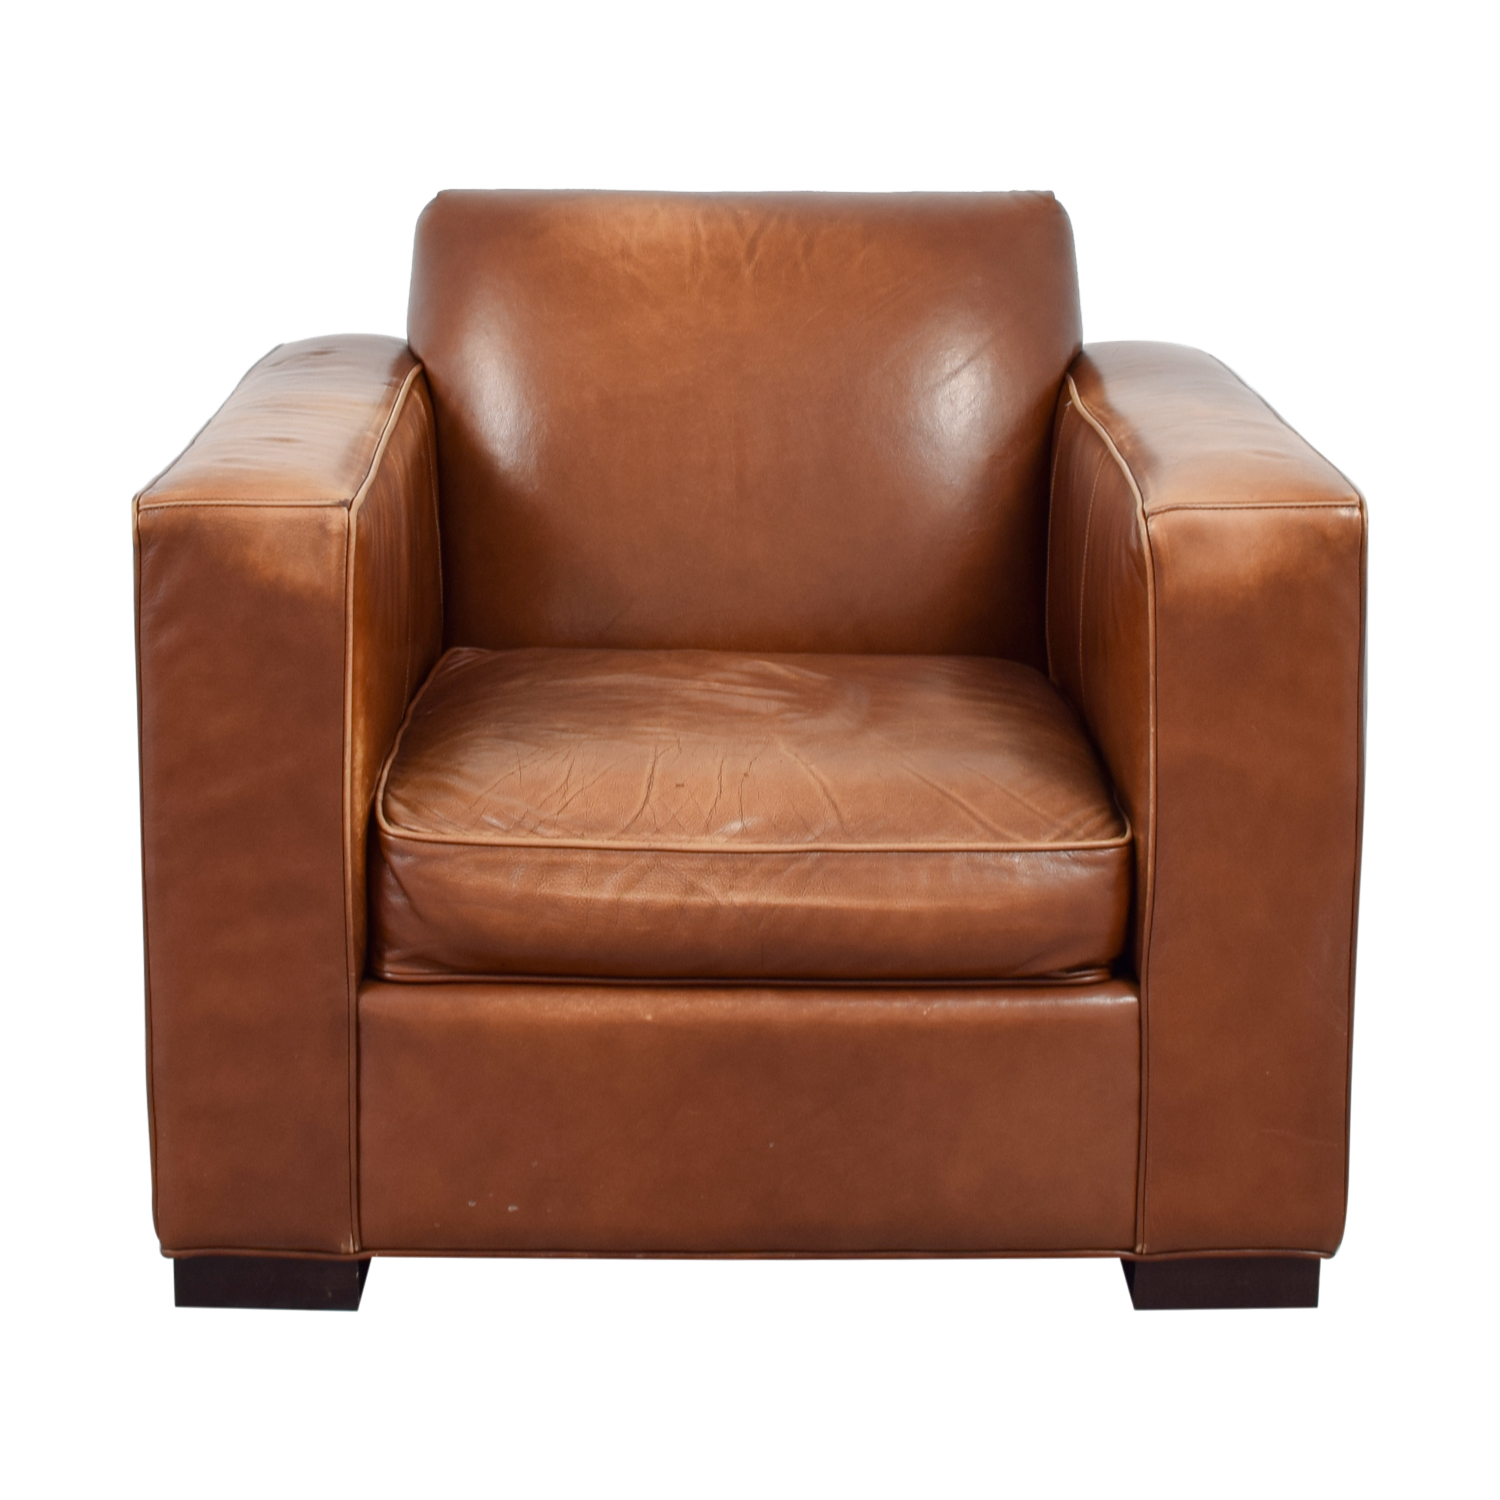 Room & Board Room & Board Ian Saddle Leather Armchair discount